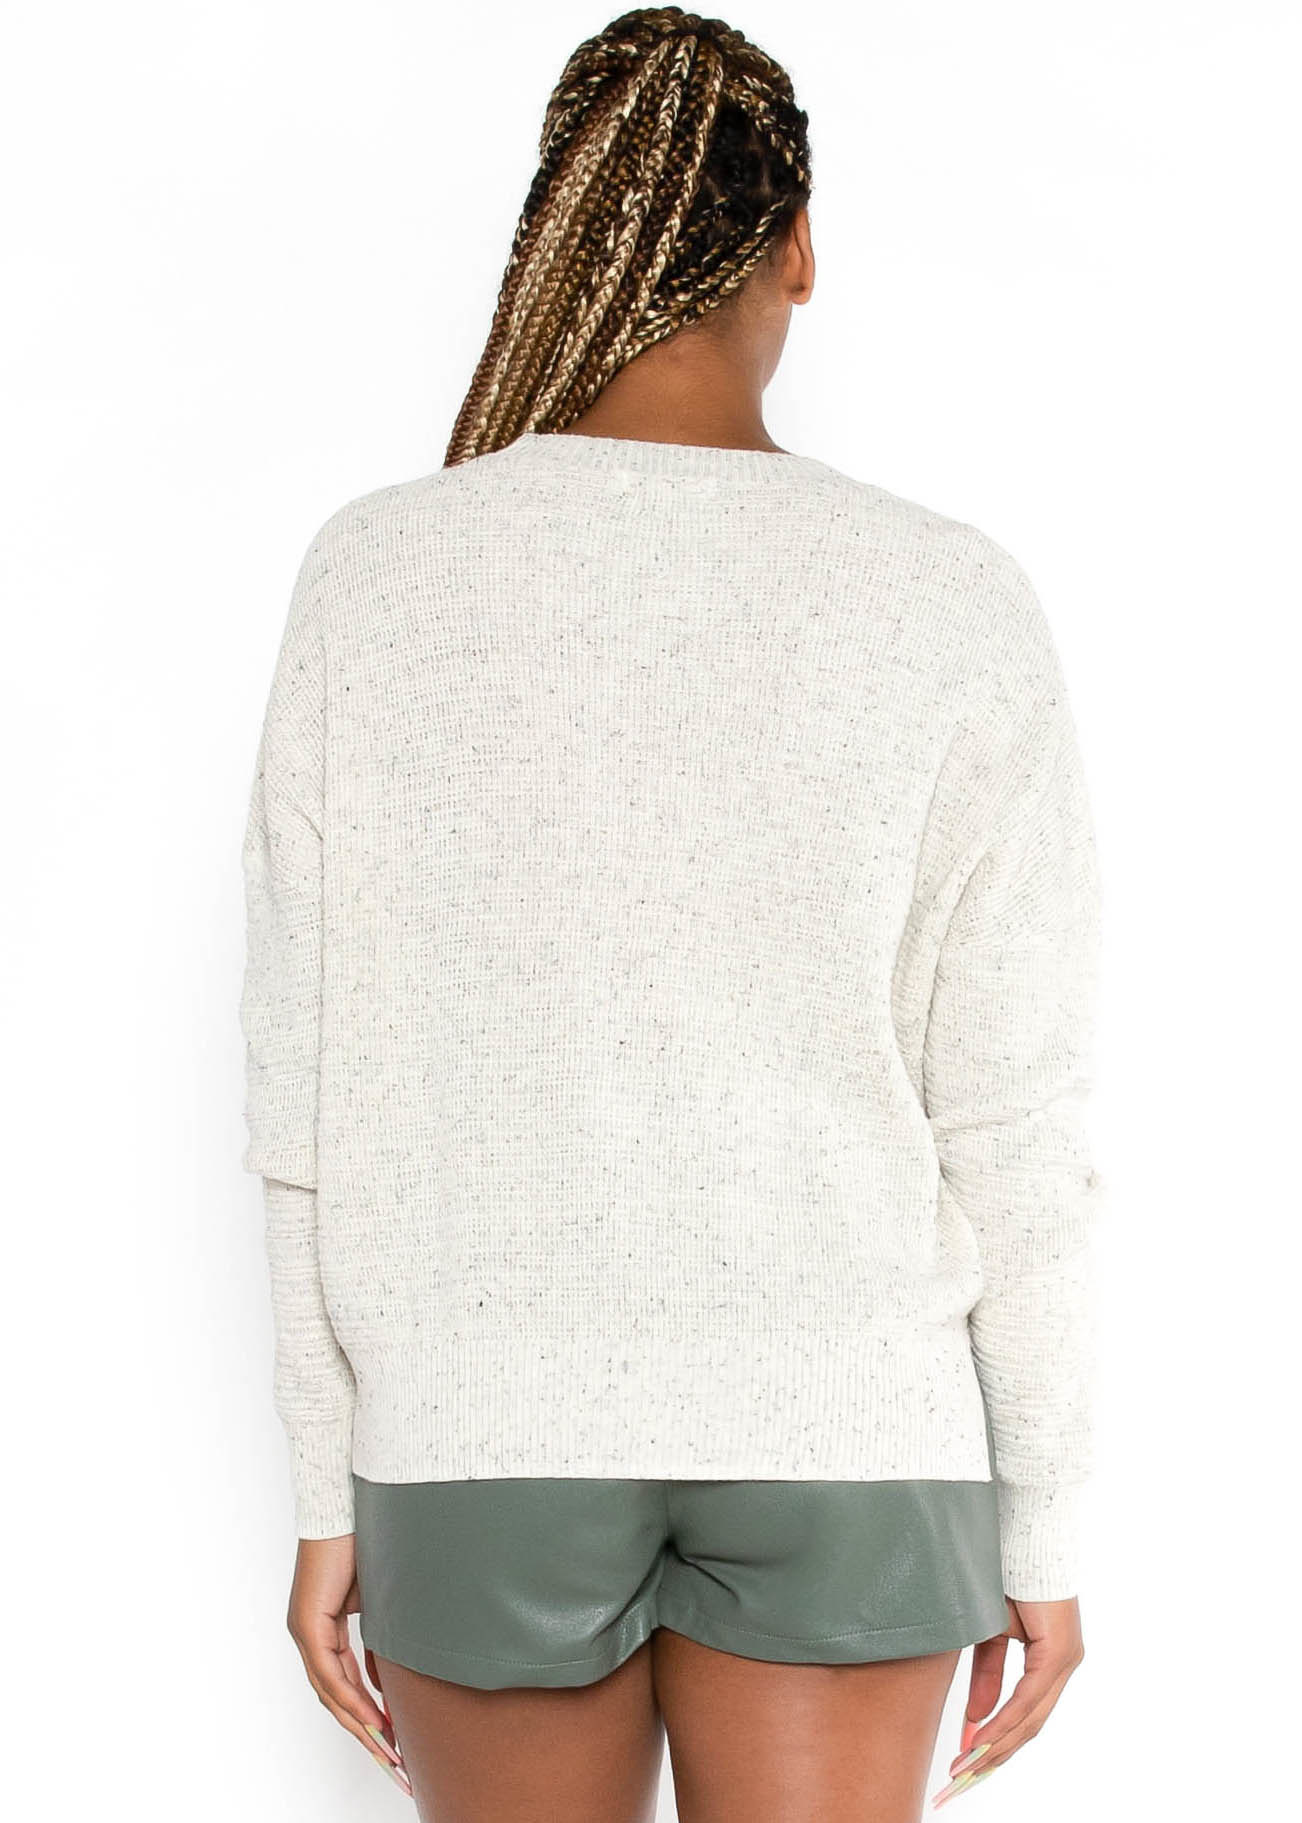 STRAIGHT TO THE POINT SWEATER